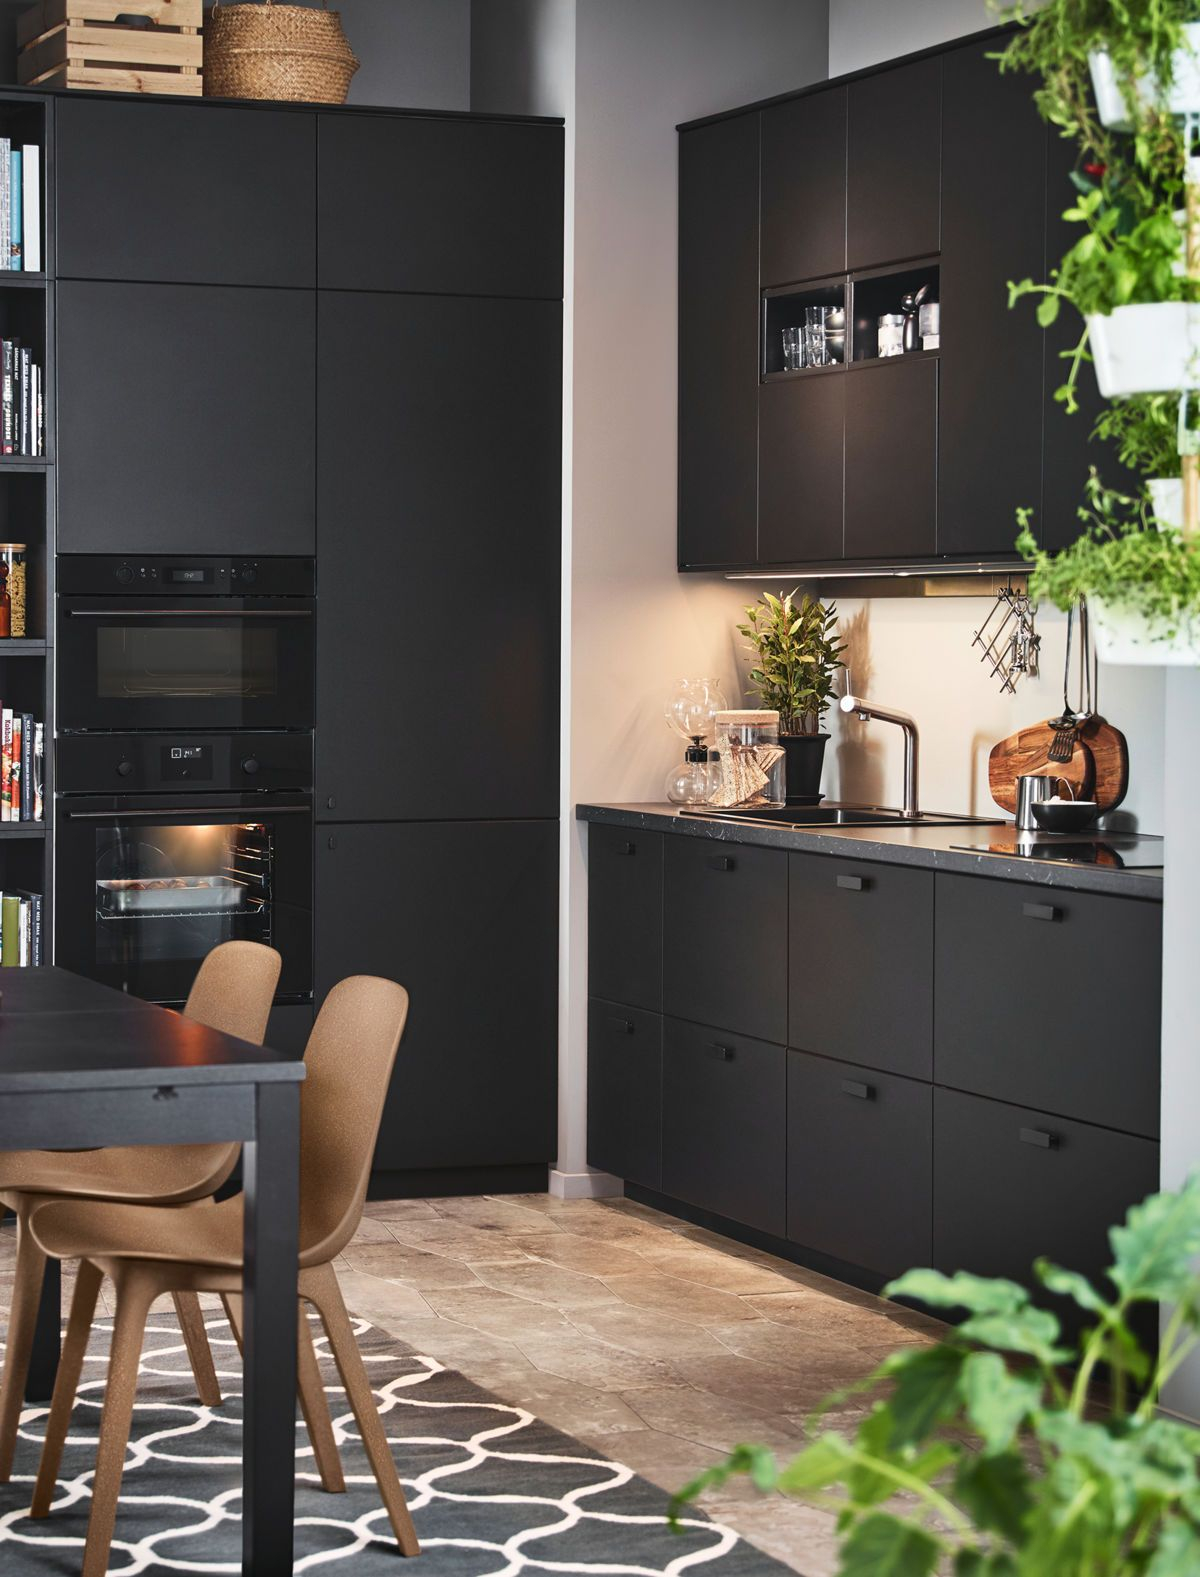 Super Kitchen Brochure 2018 | Kitchen Ideas in 2019 | Ikea kitchen, Ikea @XE29